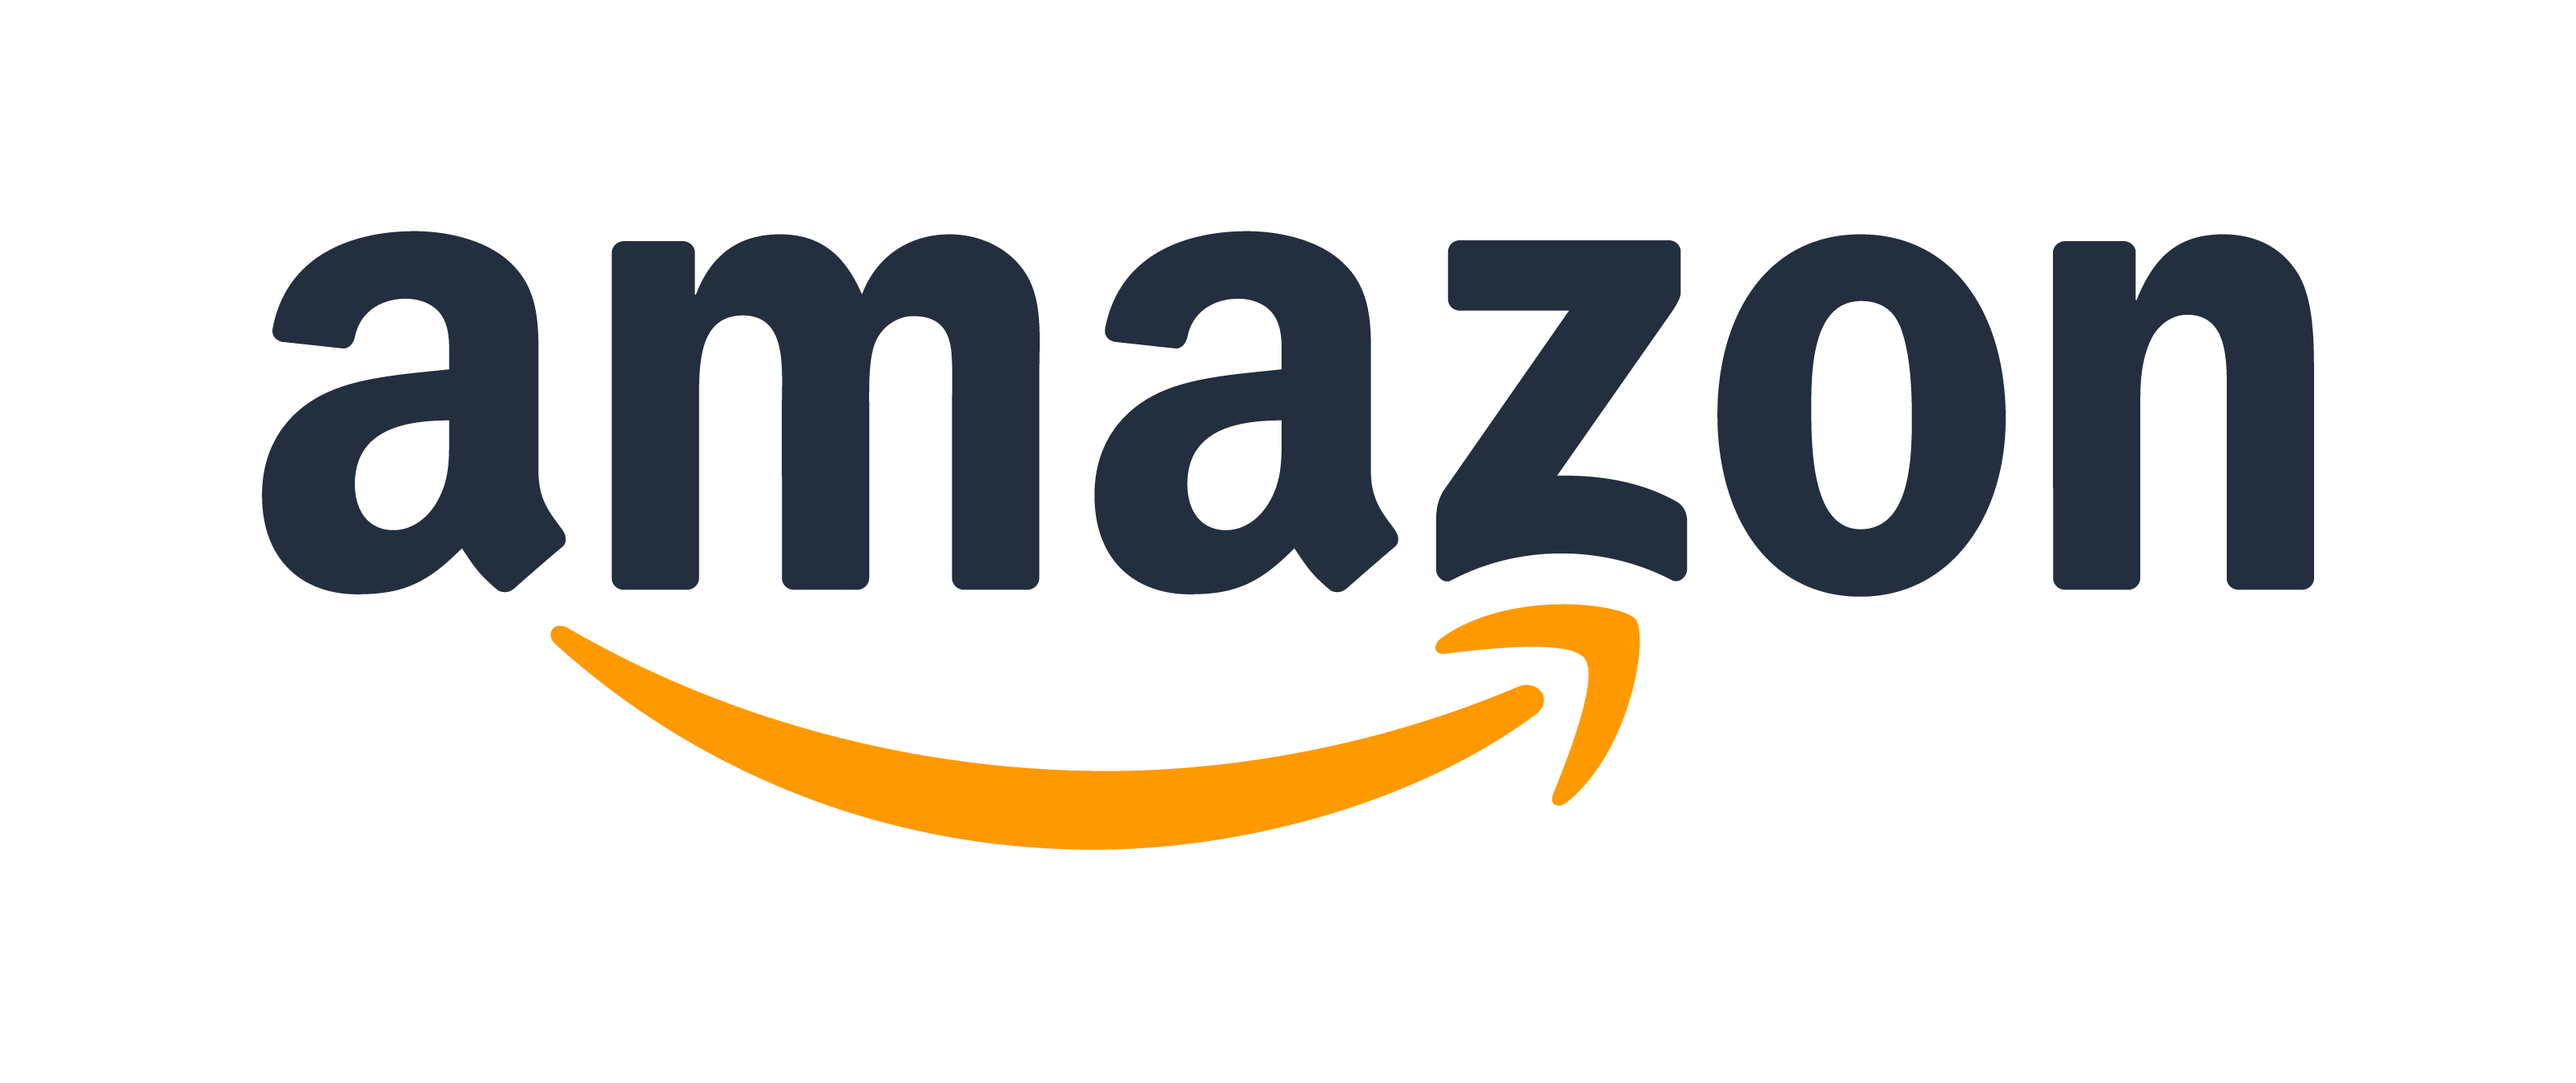 Amazon posts Q1 earnings, announces plans for free Prime 1-day shipping